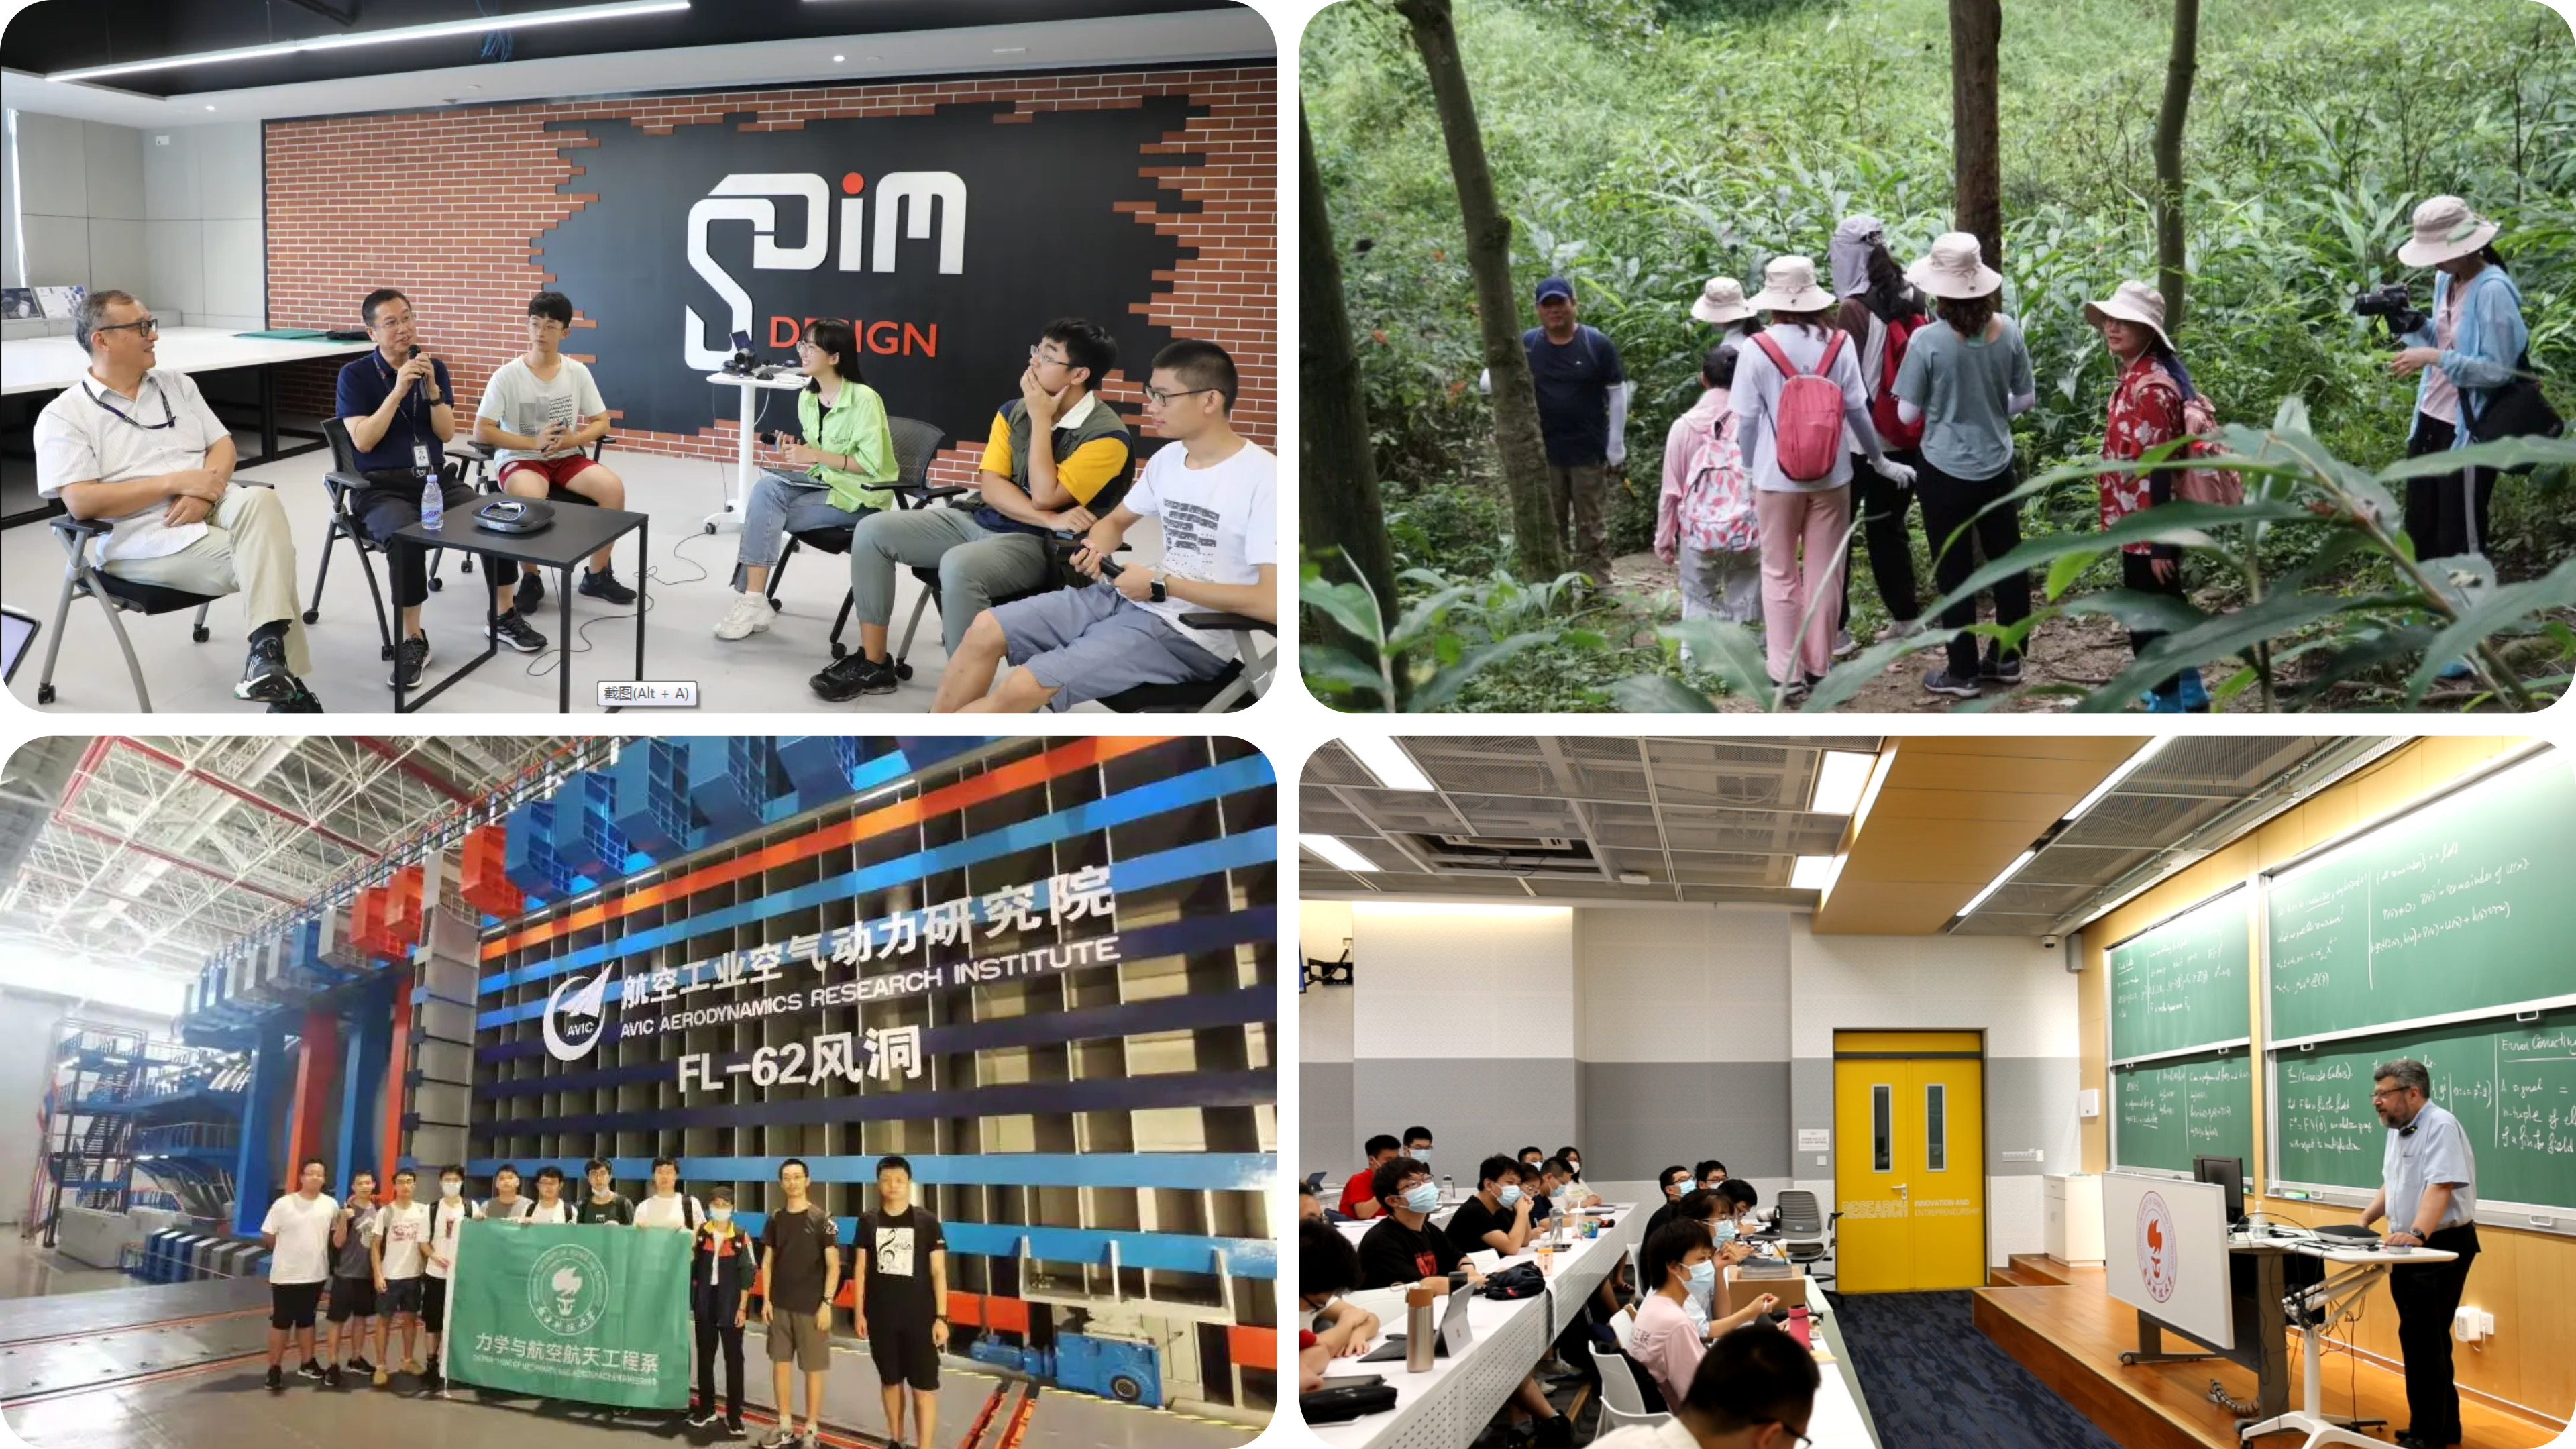 Experience a SUSTech Summer from rich educational programming